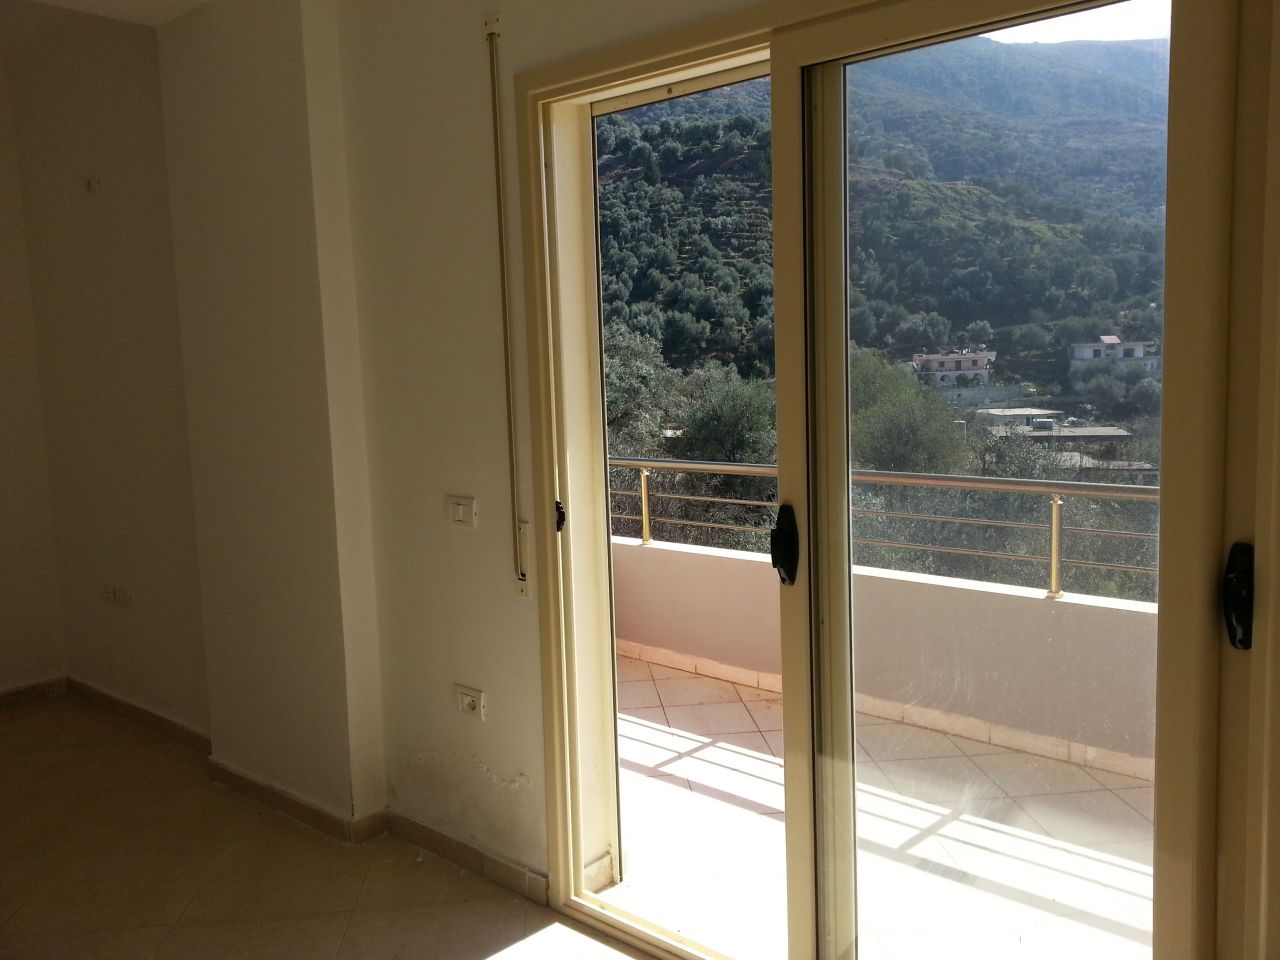 Albania Real Estate in Vlore. Apartments for Sale in Vlore with Albania Property Group